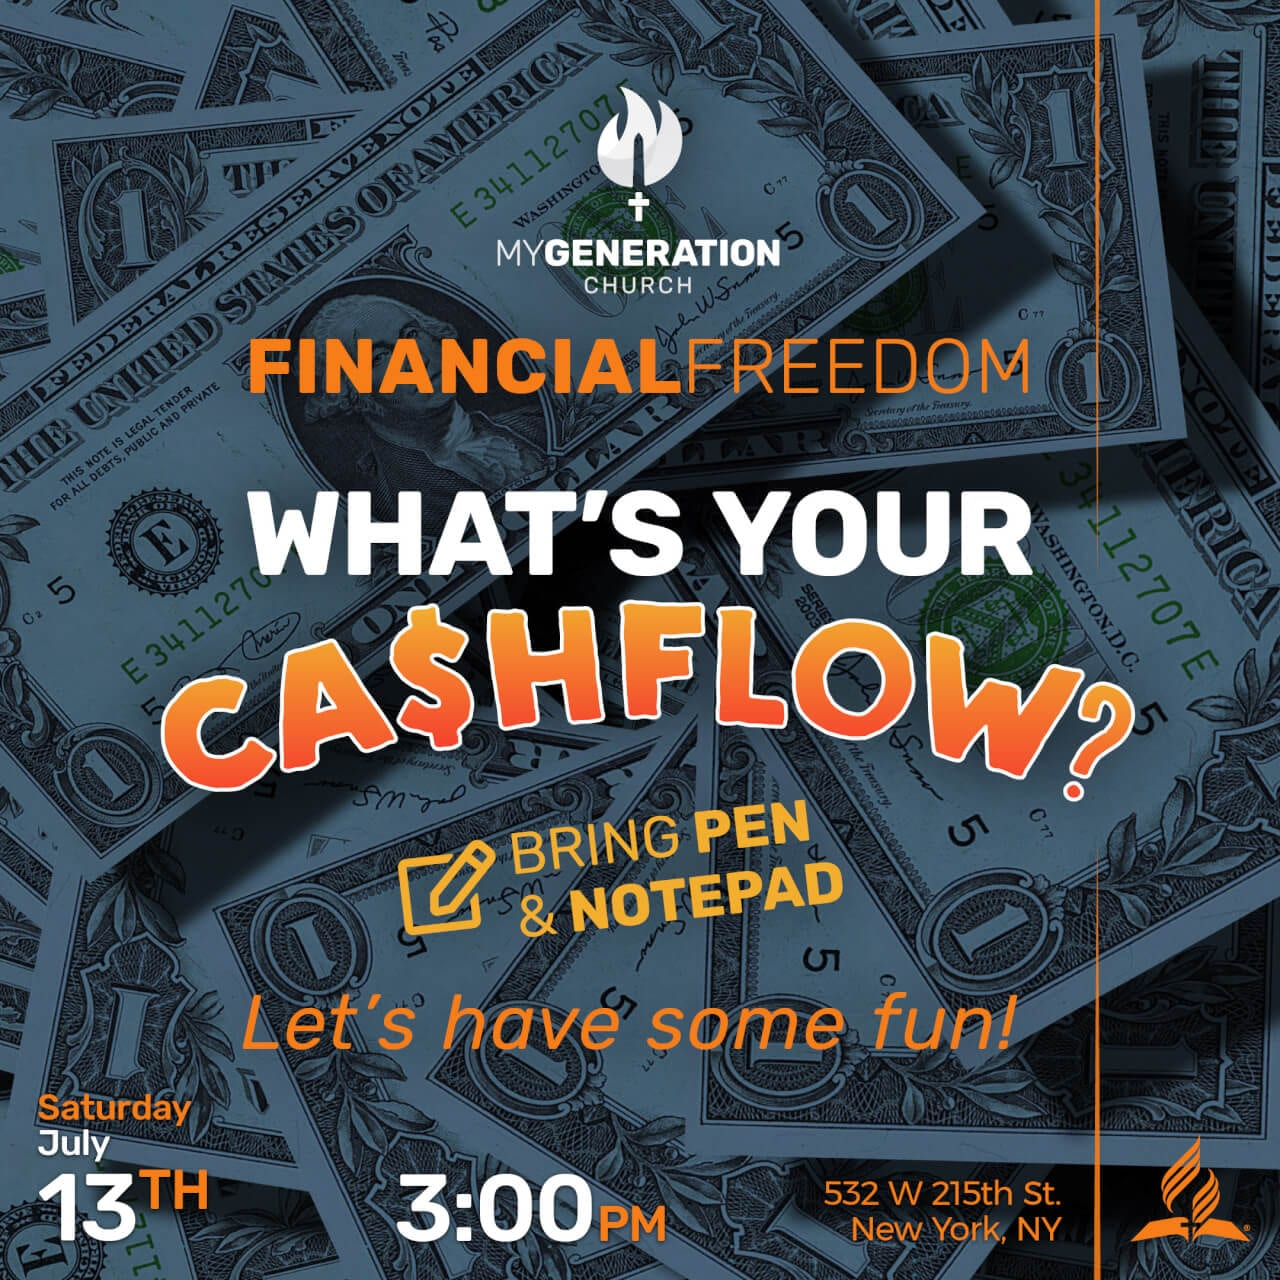 Financial Freedom - What's Your Cashflow?